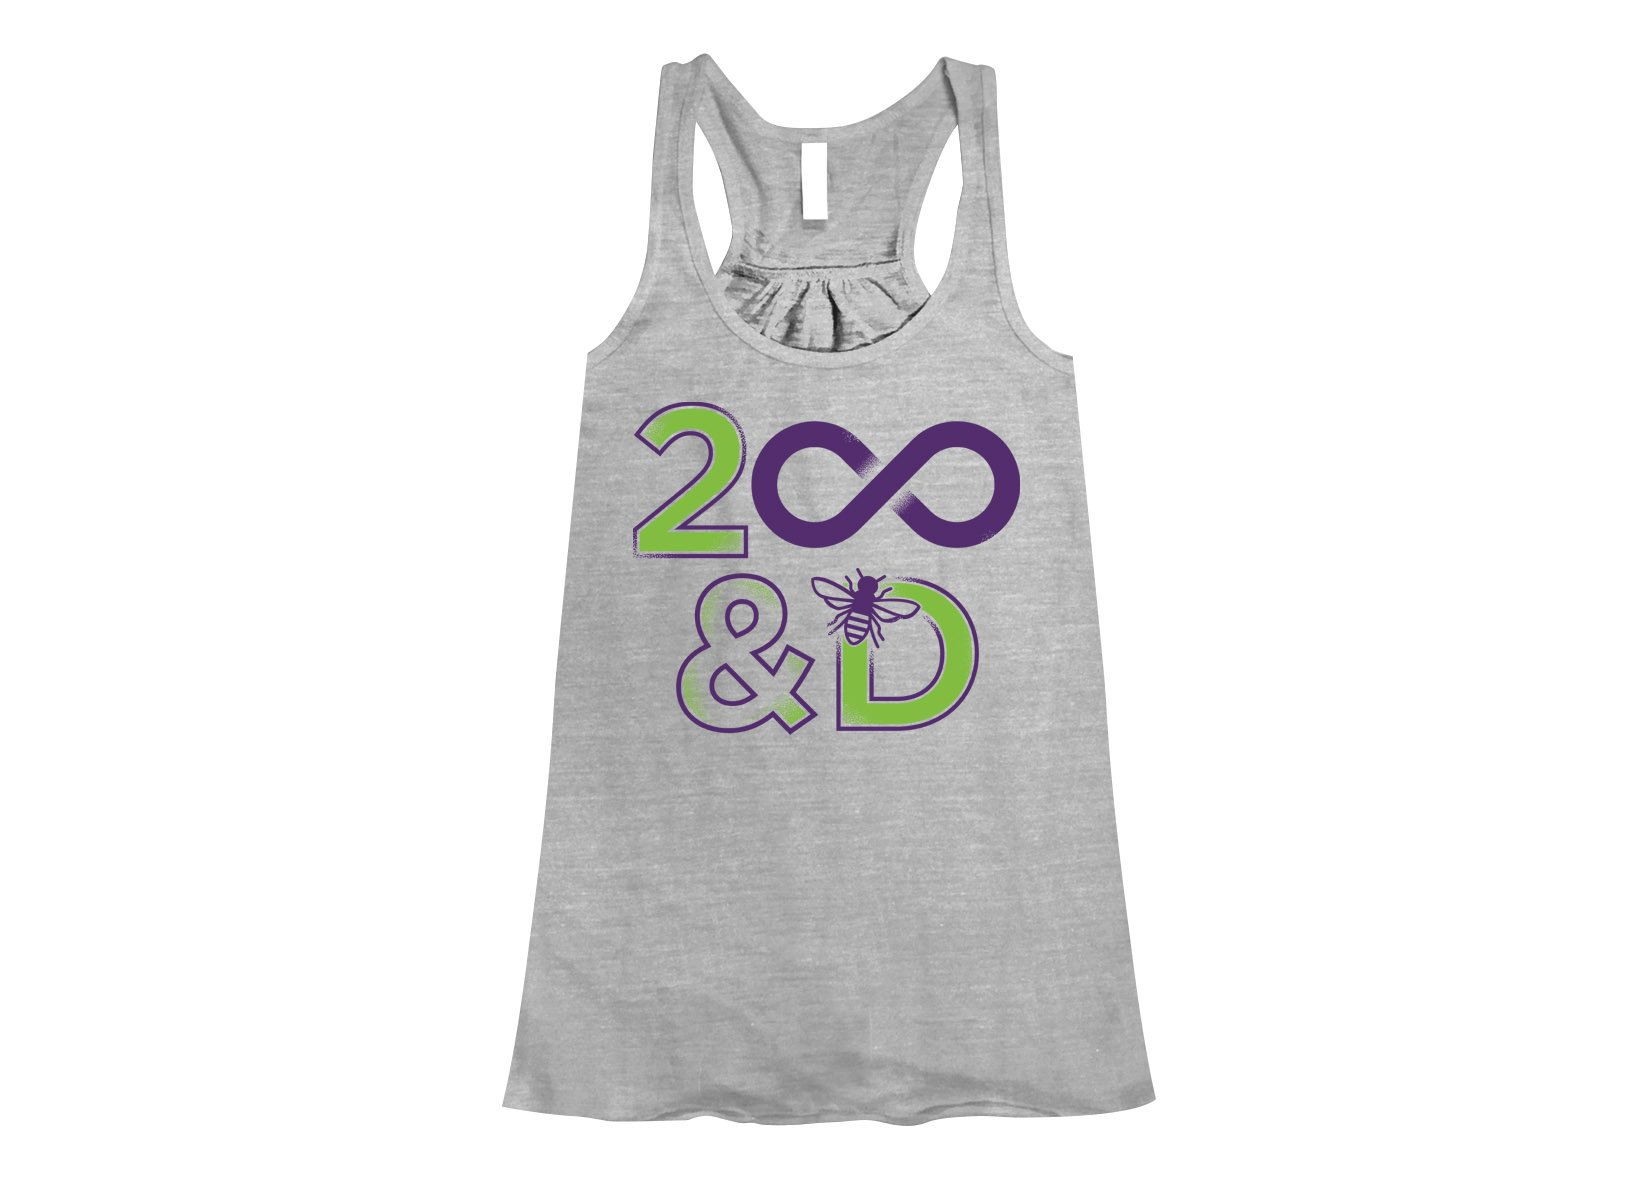 2 Infinity And B On D on Womens Tanks T-Shirt